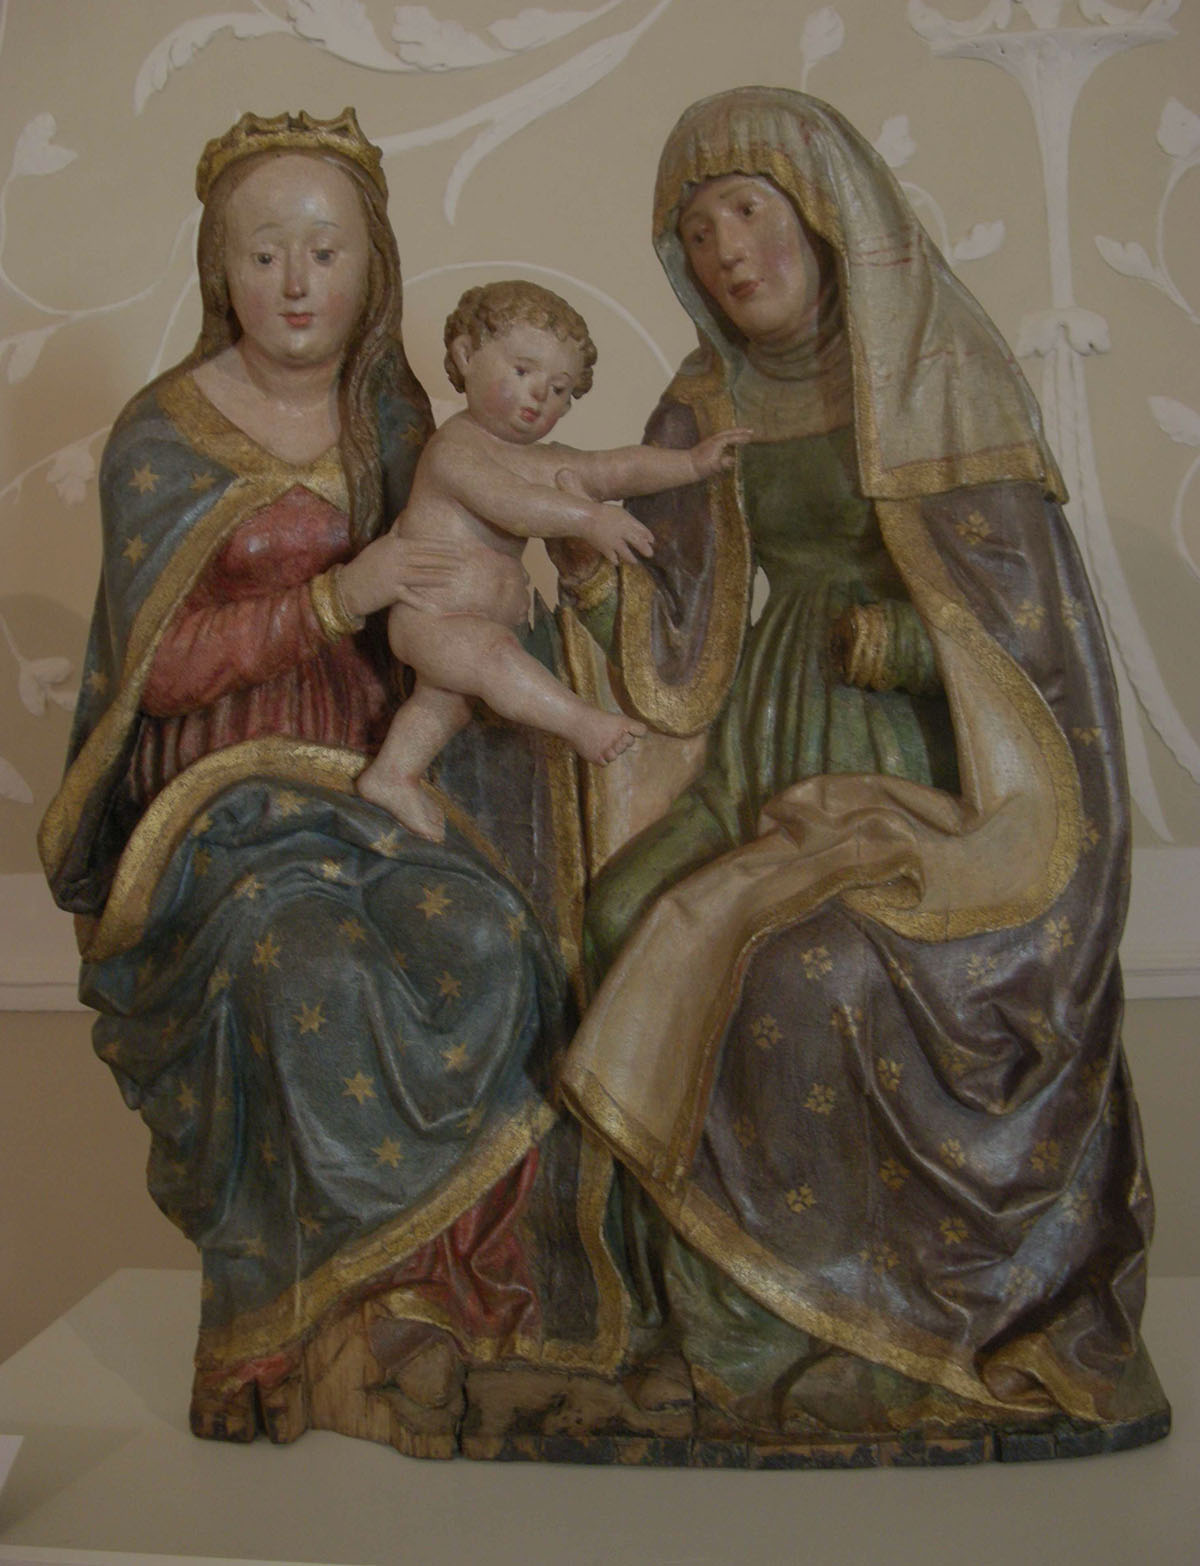 S. Anna, Maria e il Bambino - Anna SelbdrittCarved wood painted and gilded, 72x60 cm